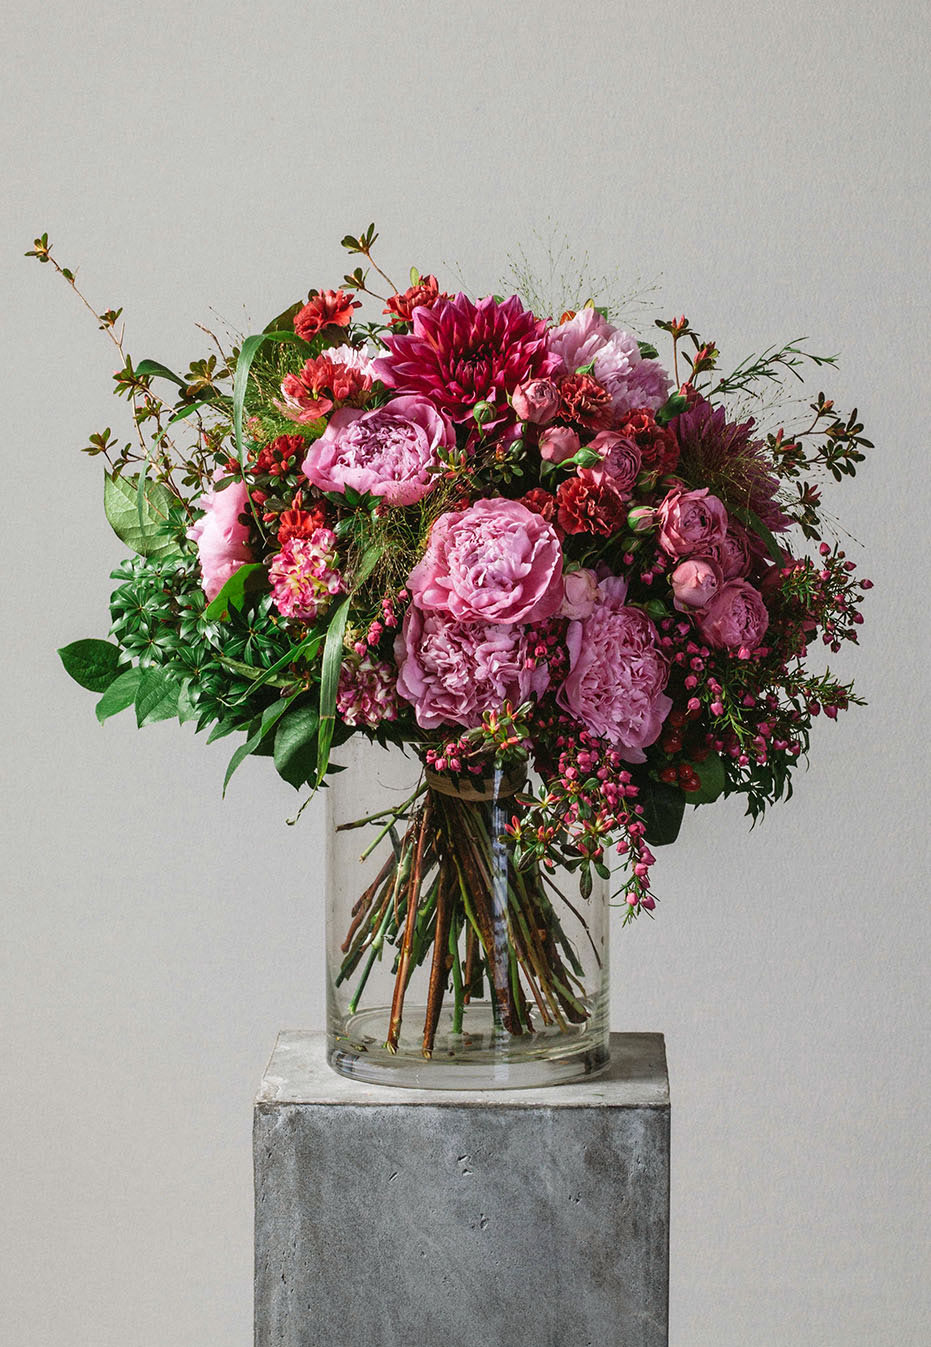 flower bouquet of rhododendron and dahlia by flannel flowers